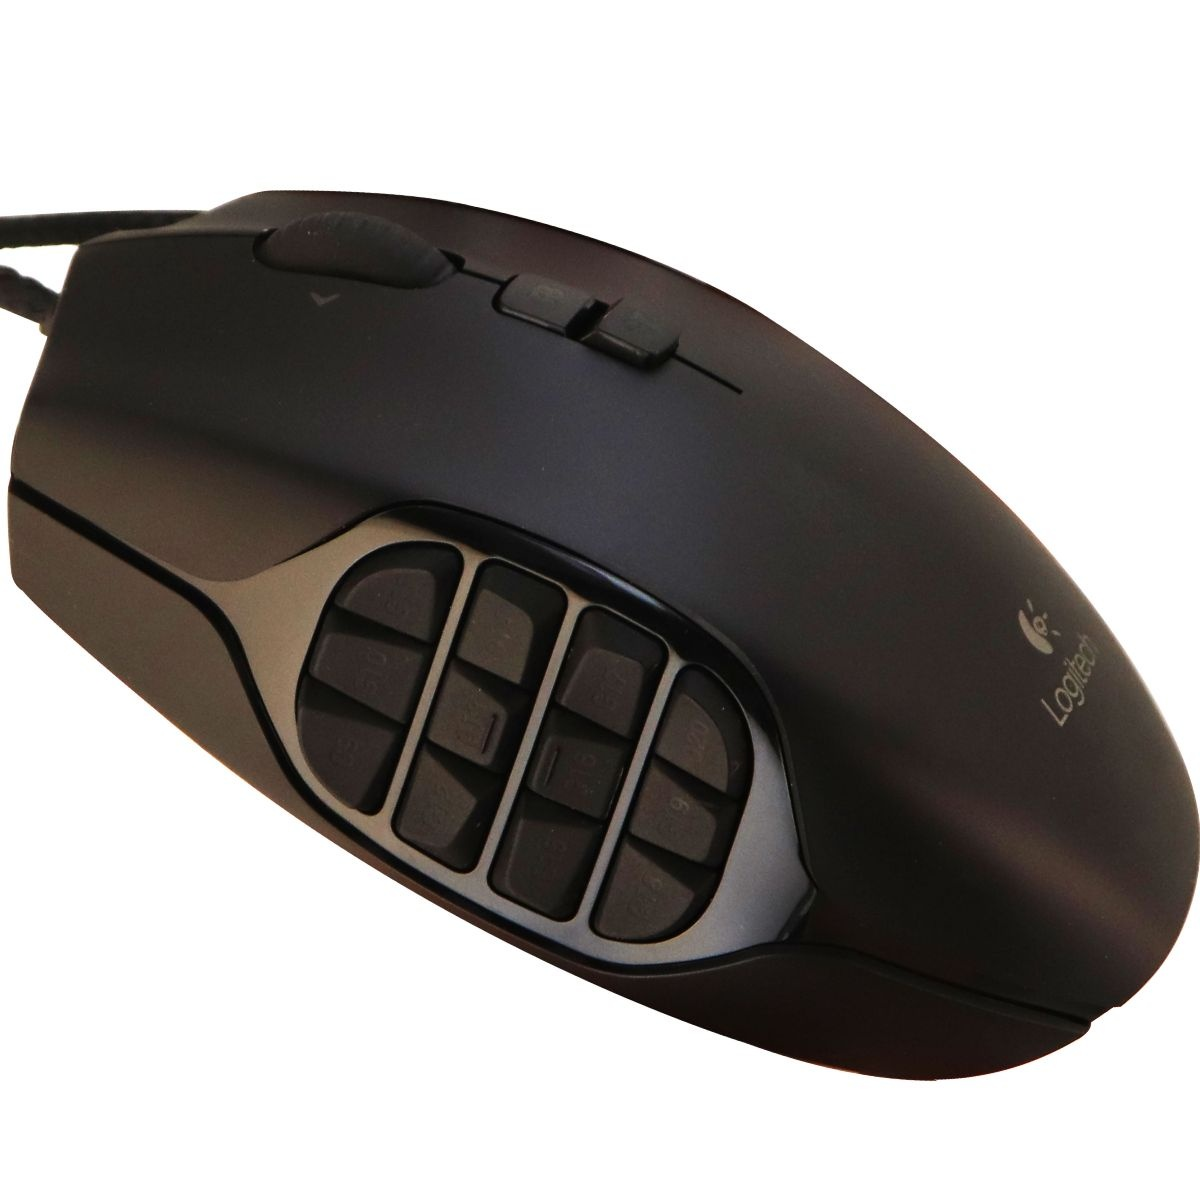 RGB Backlit Logitech G600 MMO Gaming Mouse 20 Programmable Buttons